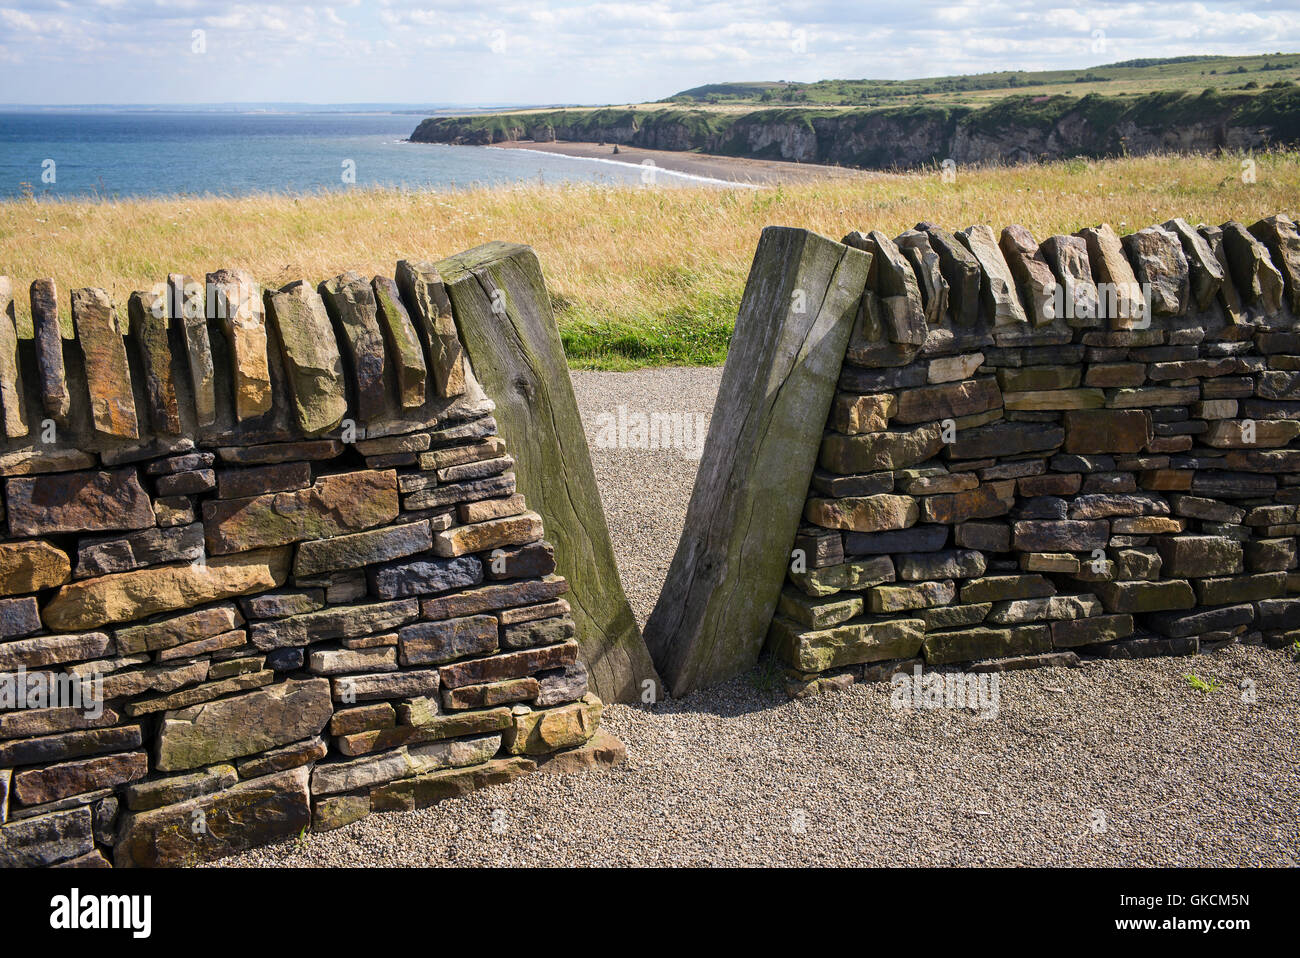 Wooden v shaped gap in a handcrafted stone wall at Nose's Point, Dawdon, Seaham, County Durham, UK - Stock Image